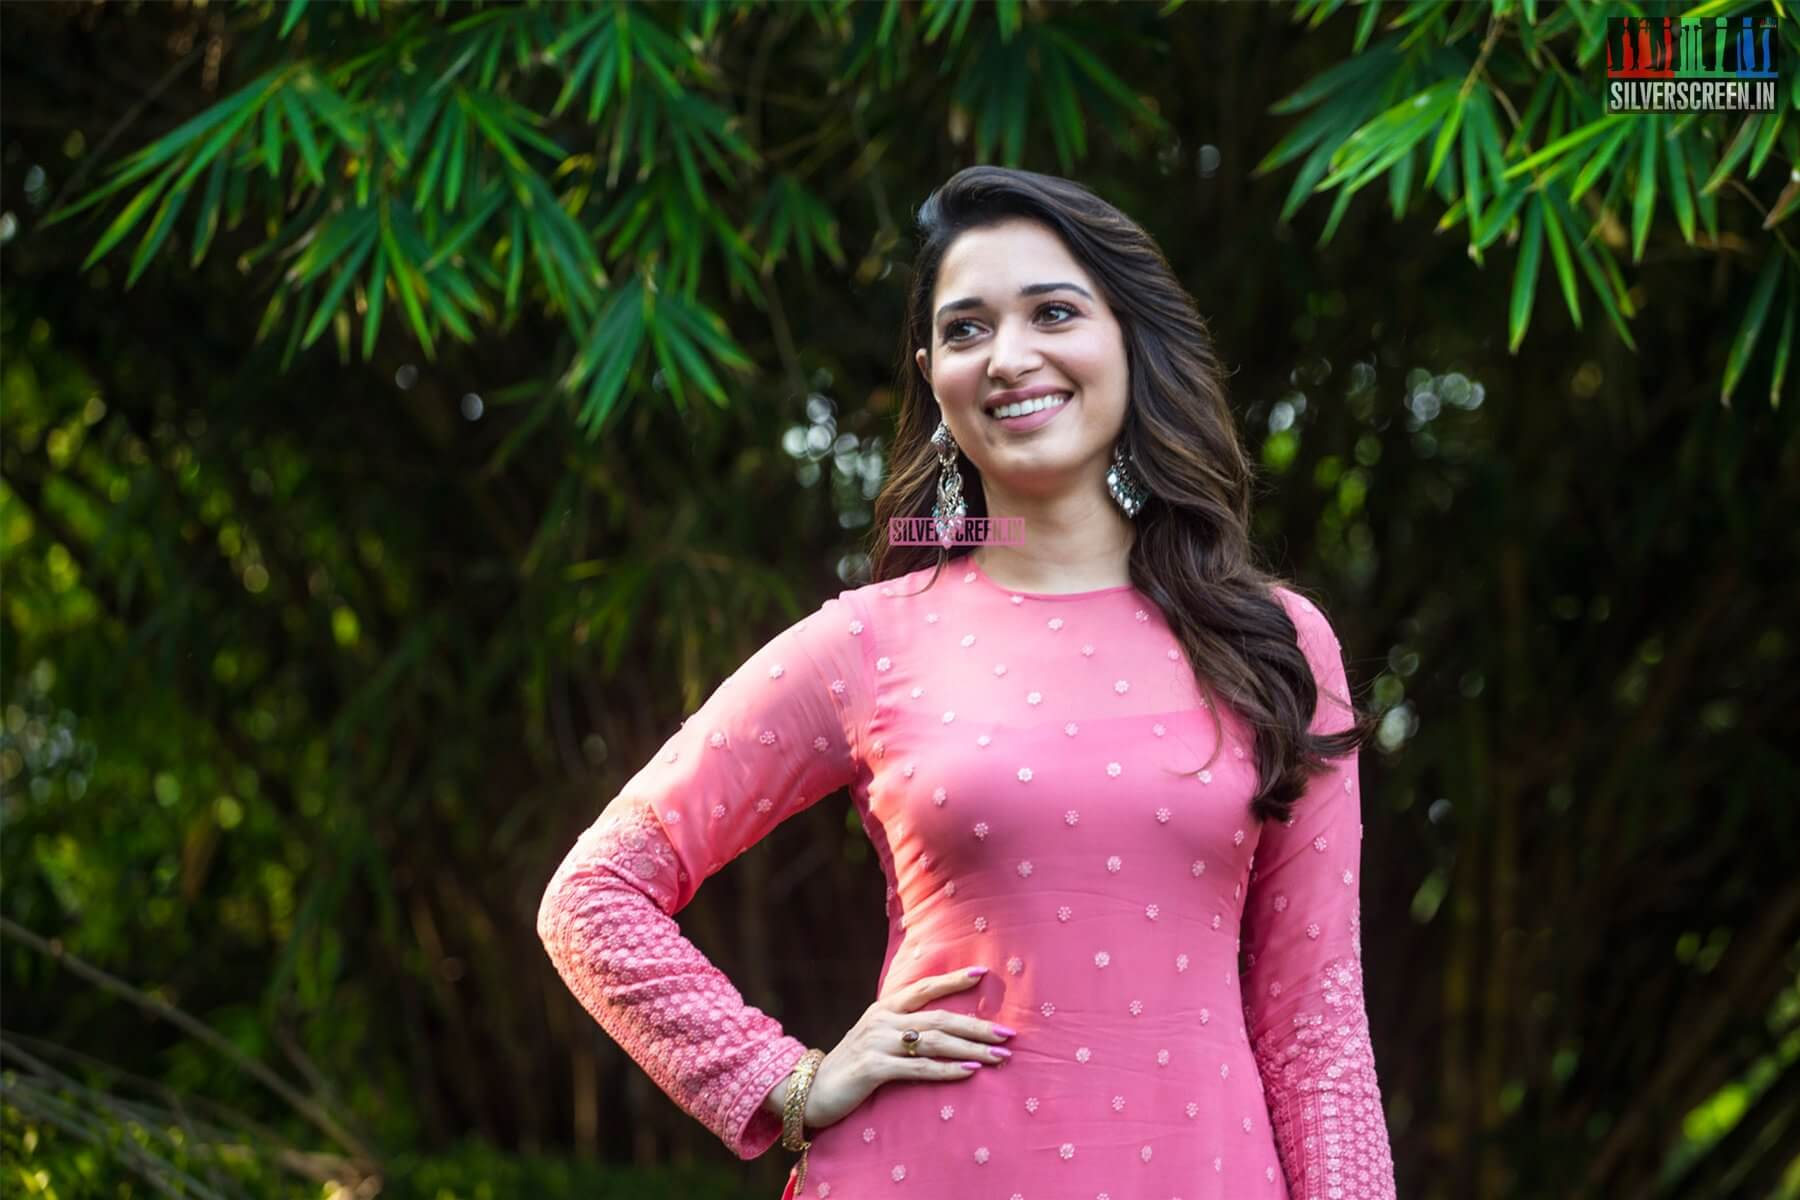 Tamannaah Bhatia Photos(images), Height, Biography, Movies, Date Of Birth, House, Details, Marriage, Boyfriend, Net Worth, Education, Instagram, Facebook, Twitter, Wiki, Imdb, Youtube (62)